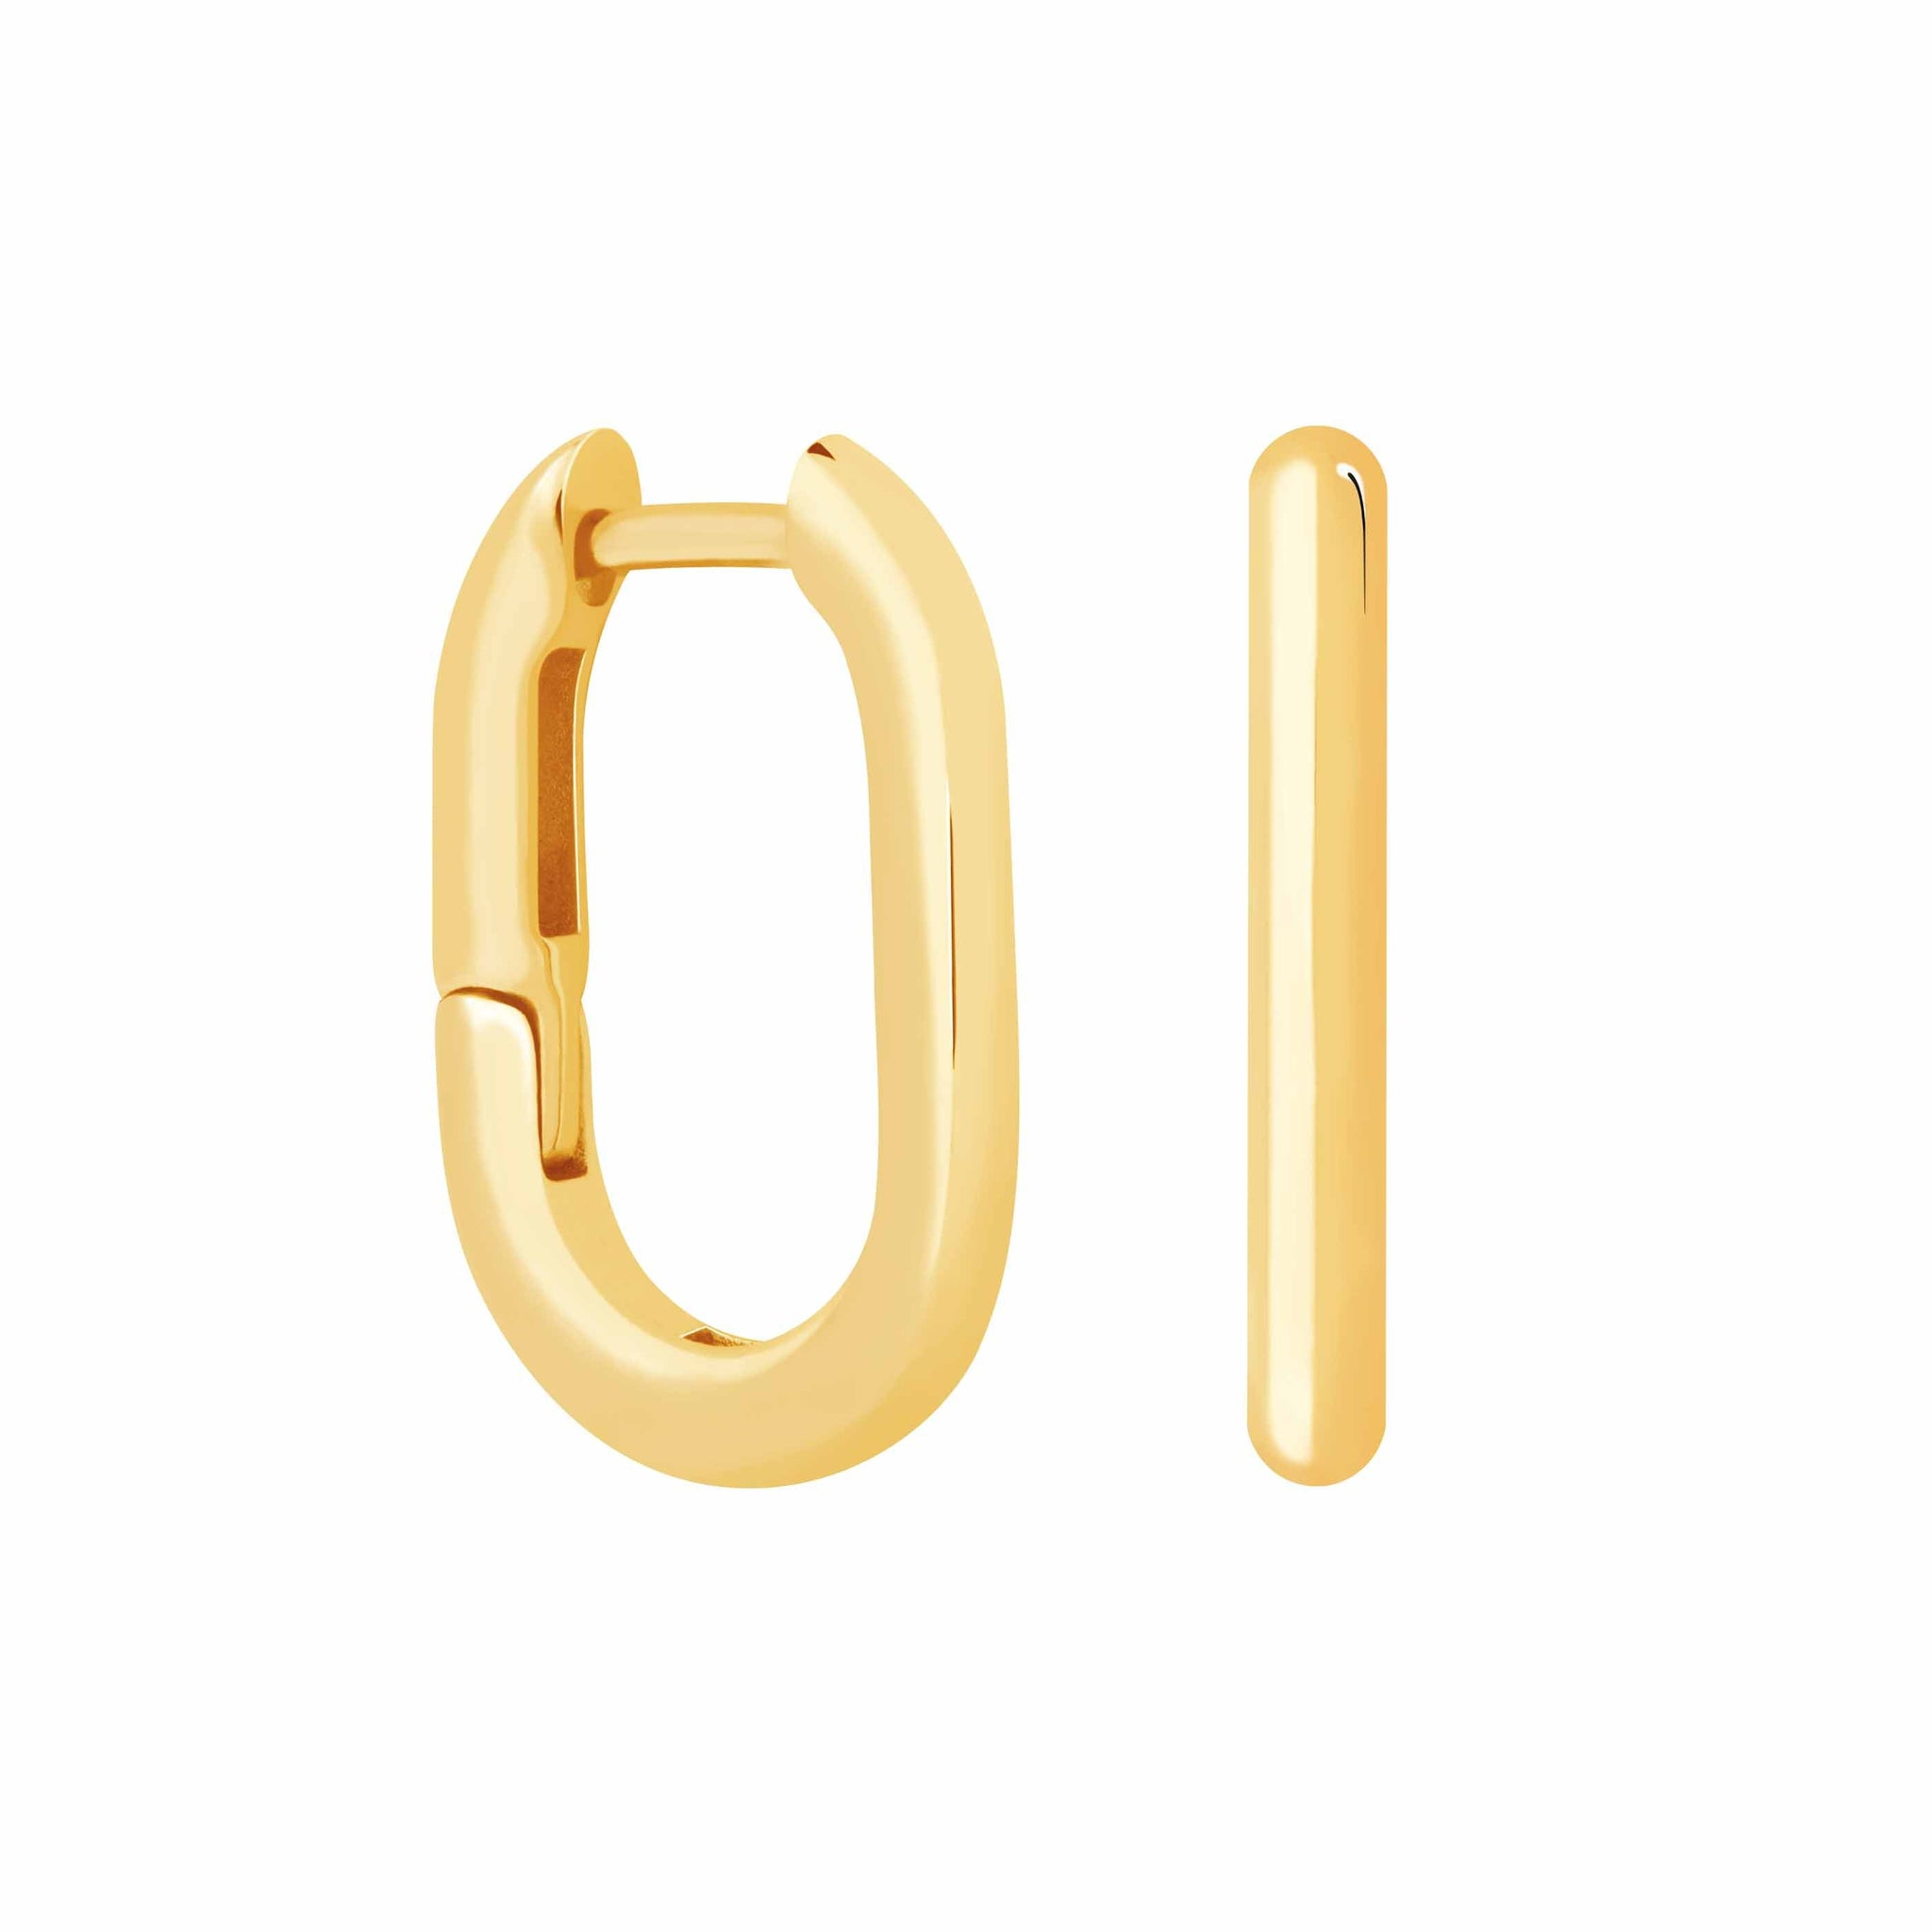 Rectangular Hoops in Gold